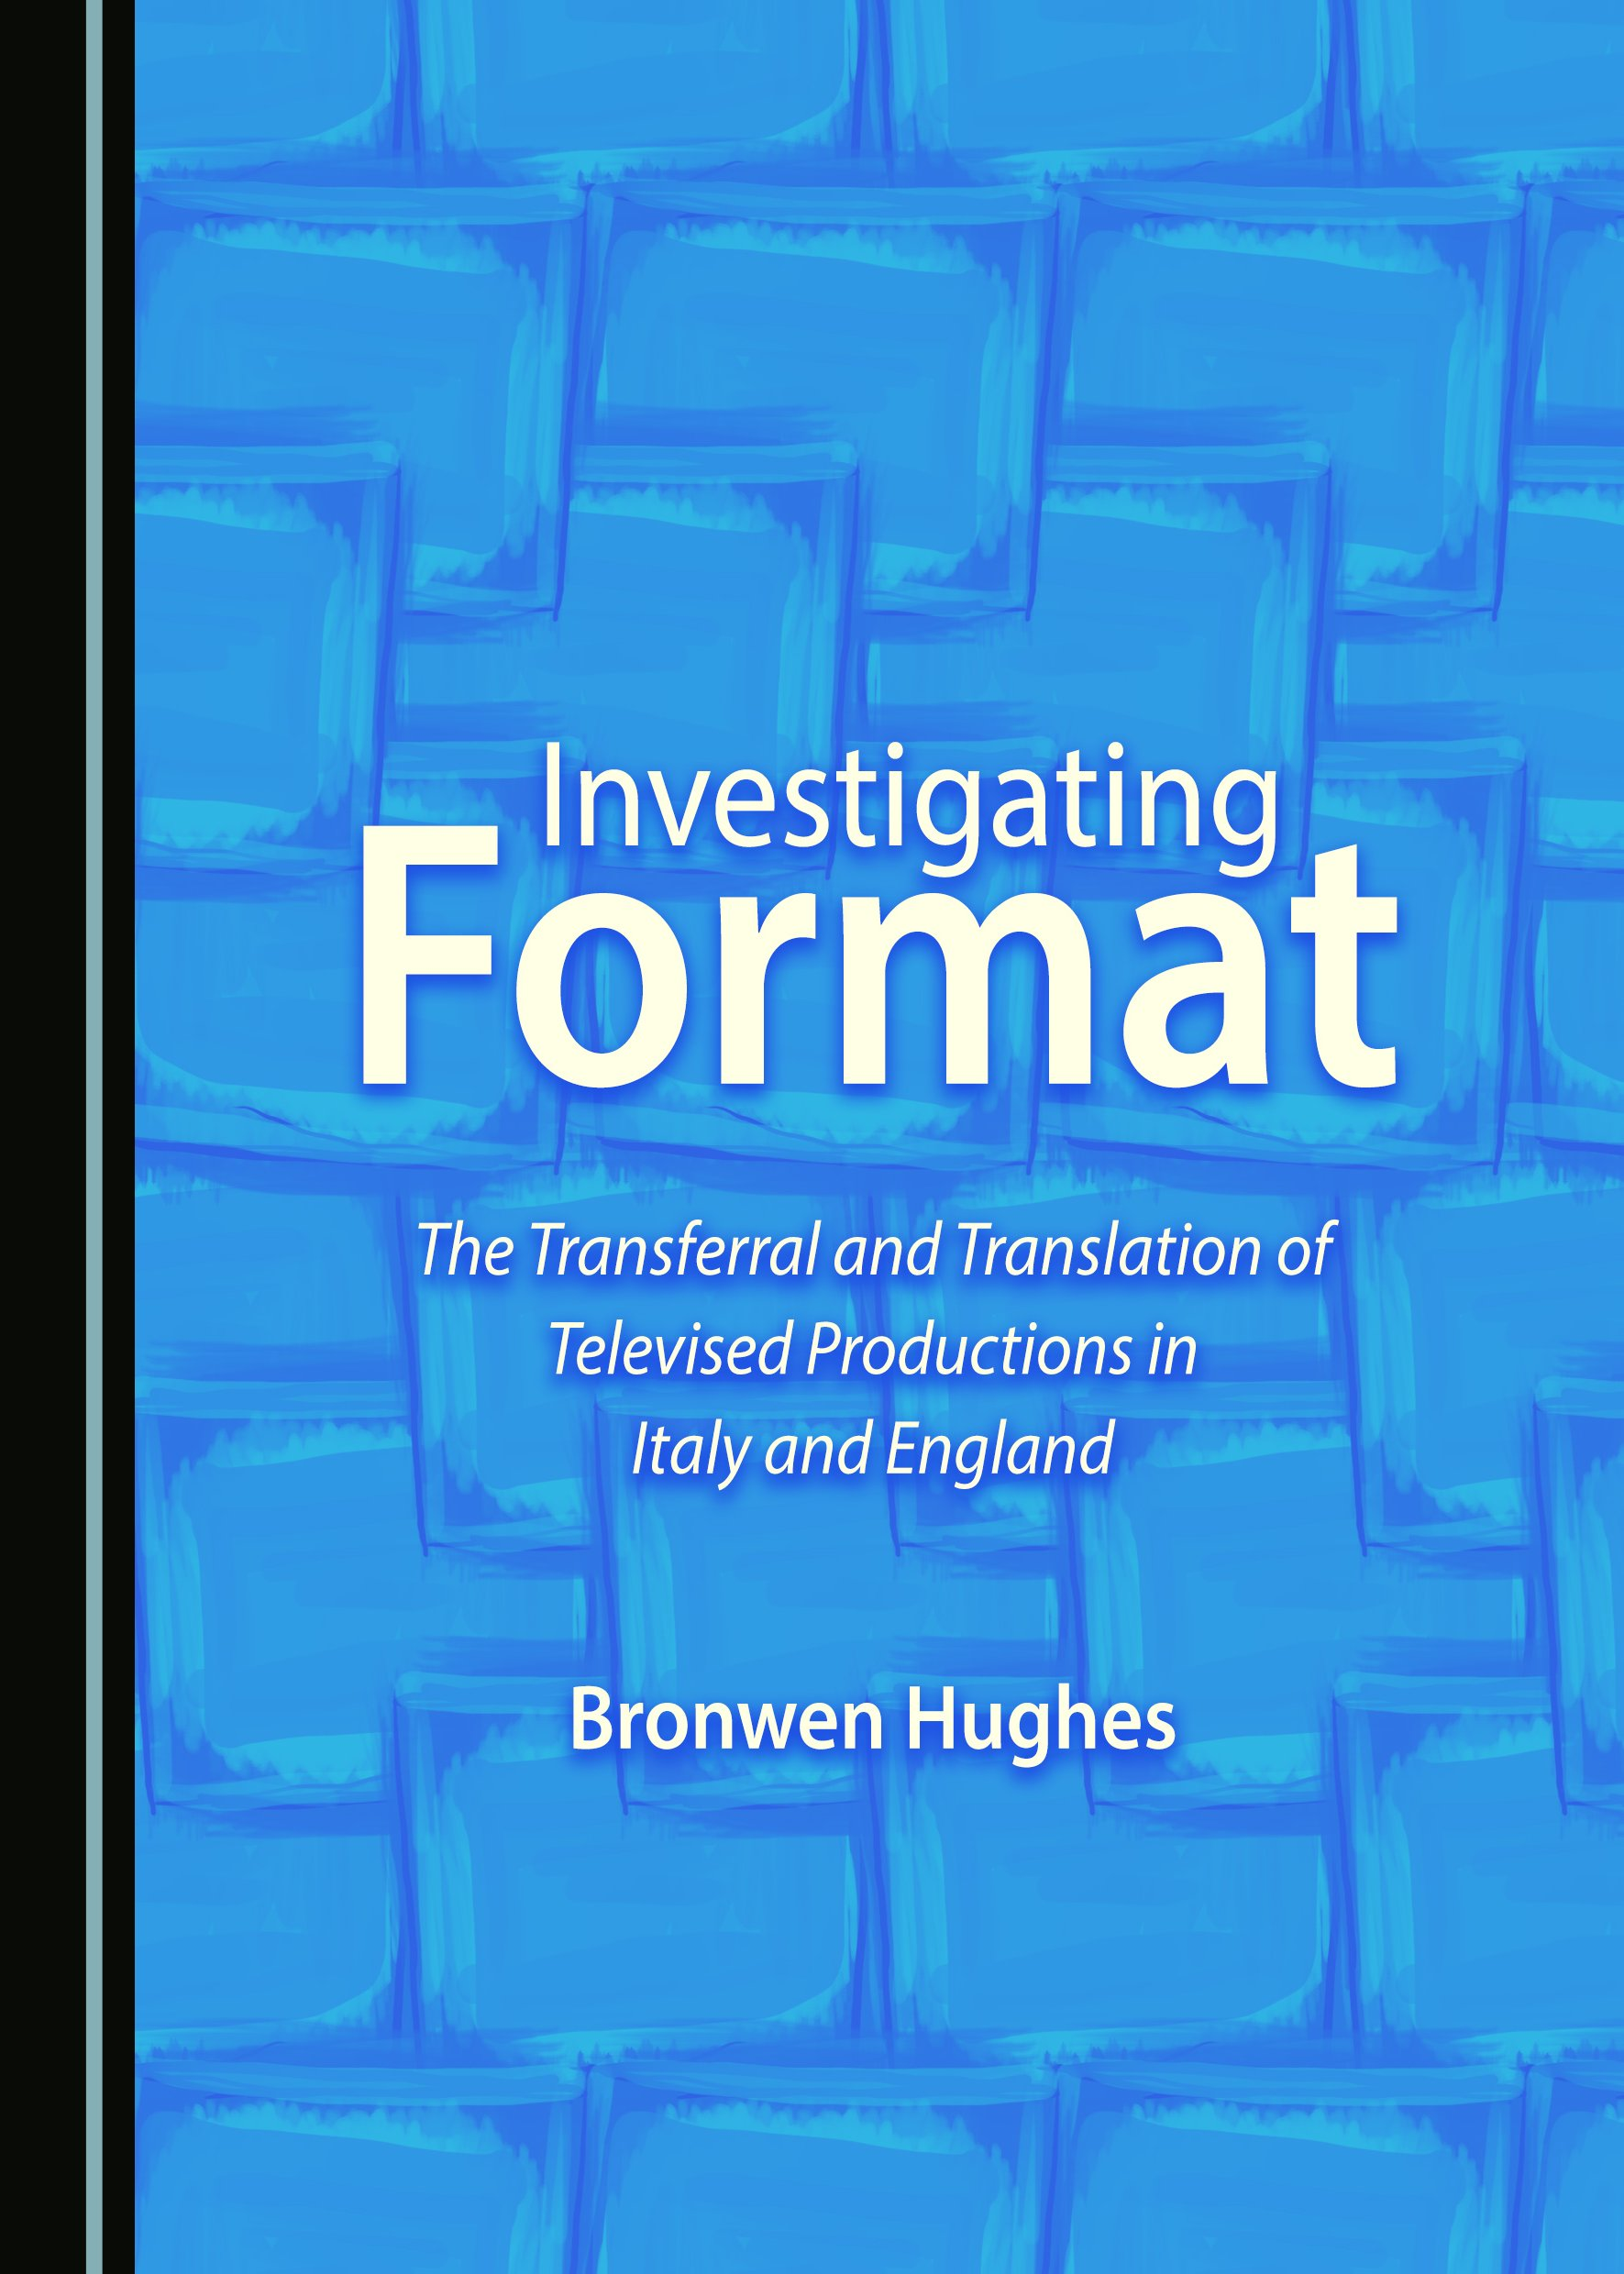 Investigating Format: The Transferral and Translation of Televised Productions in Italy and England